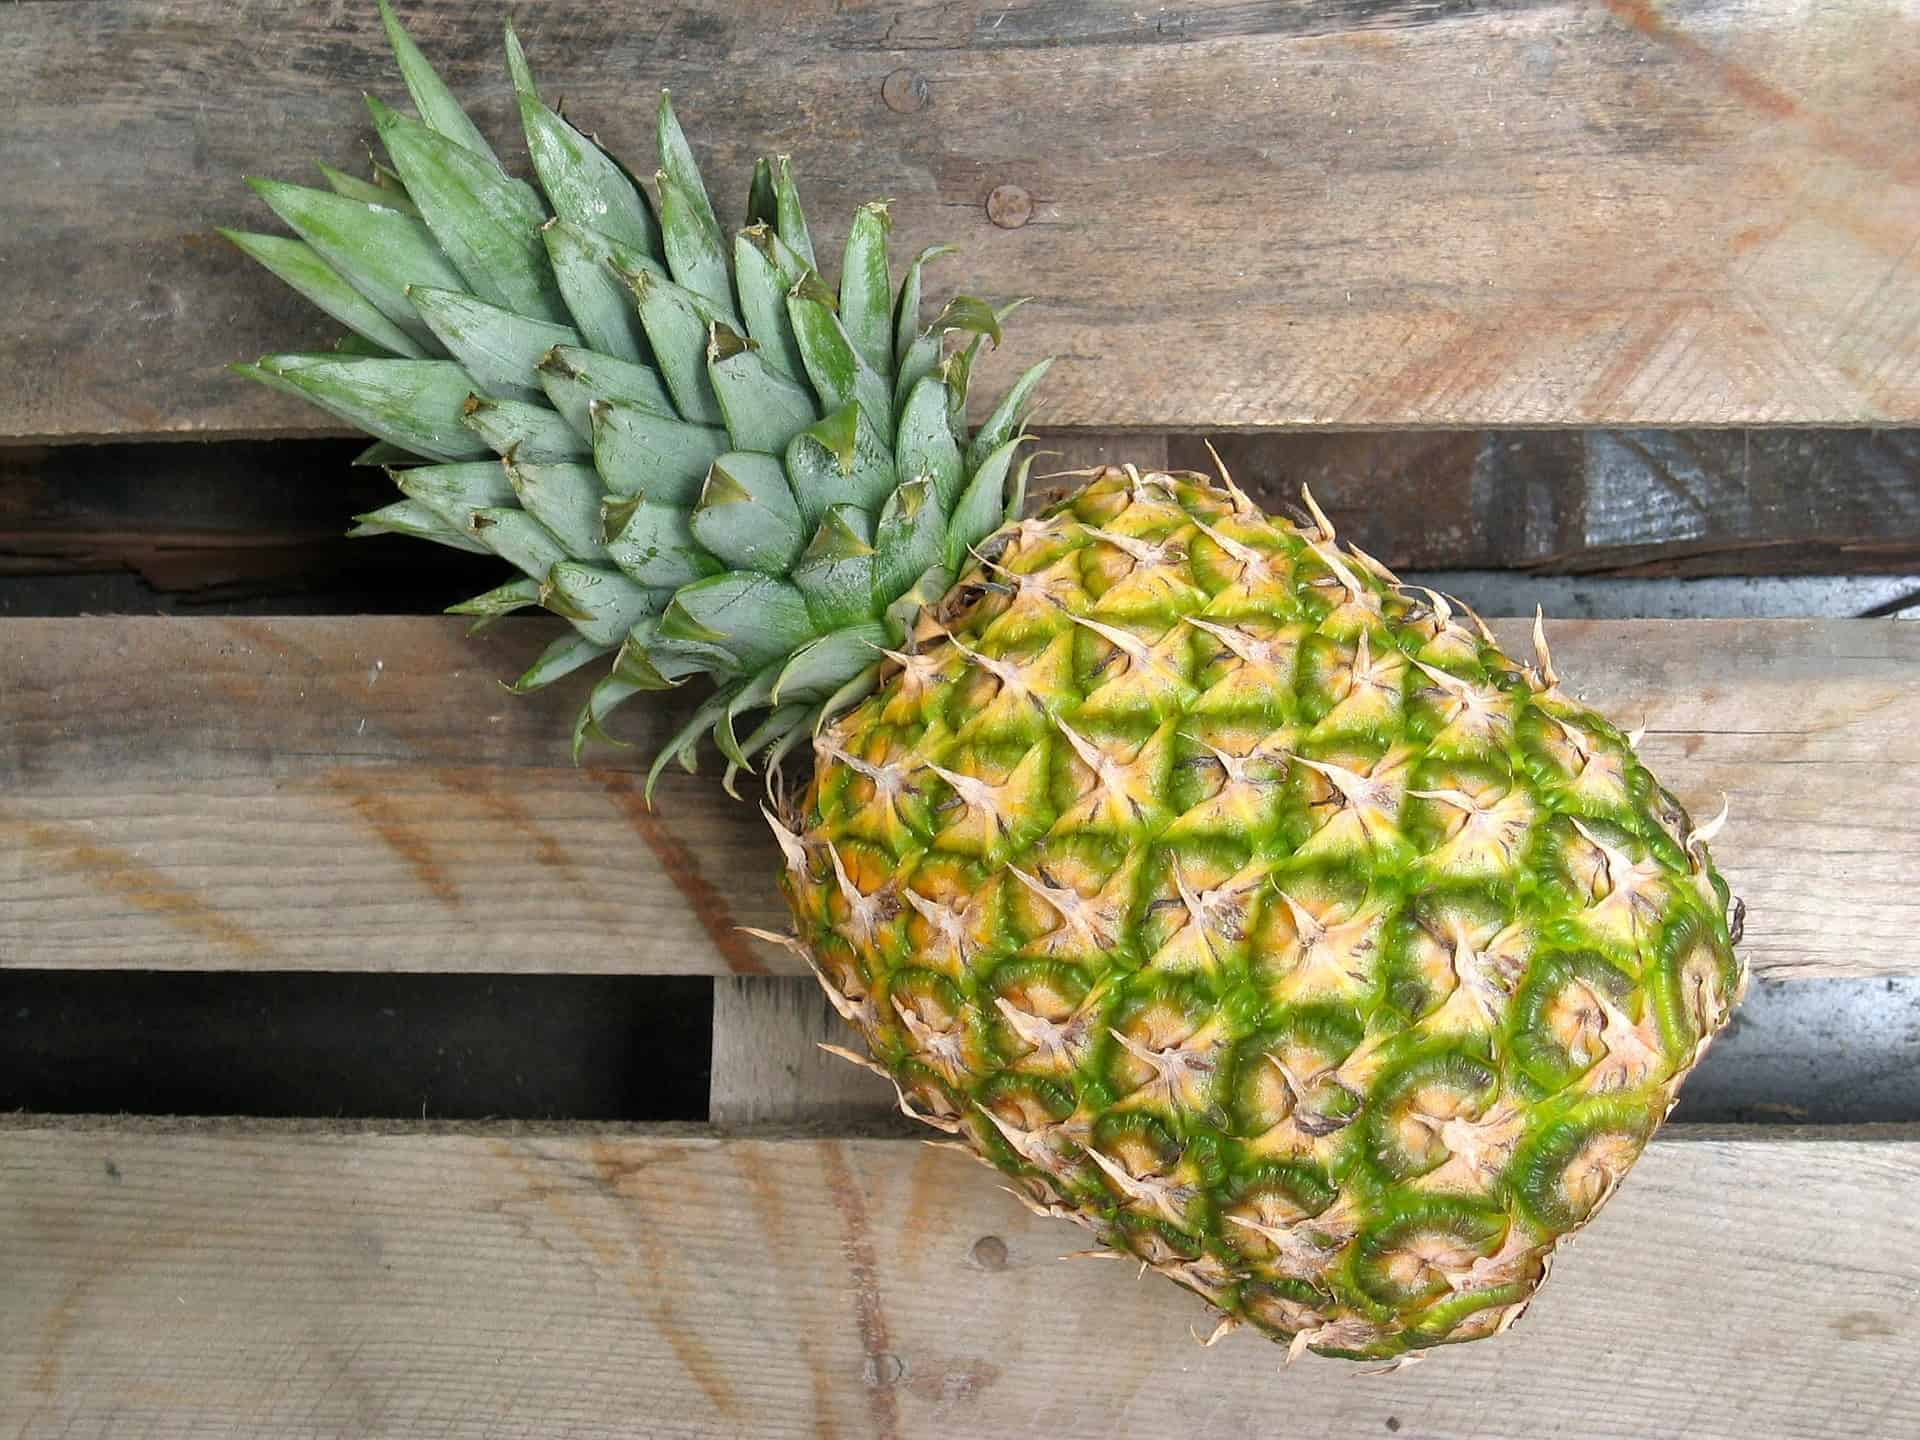 Pineapple Fruit - Liberty Leather Goods